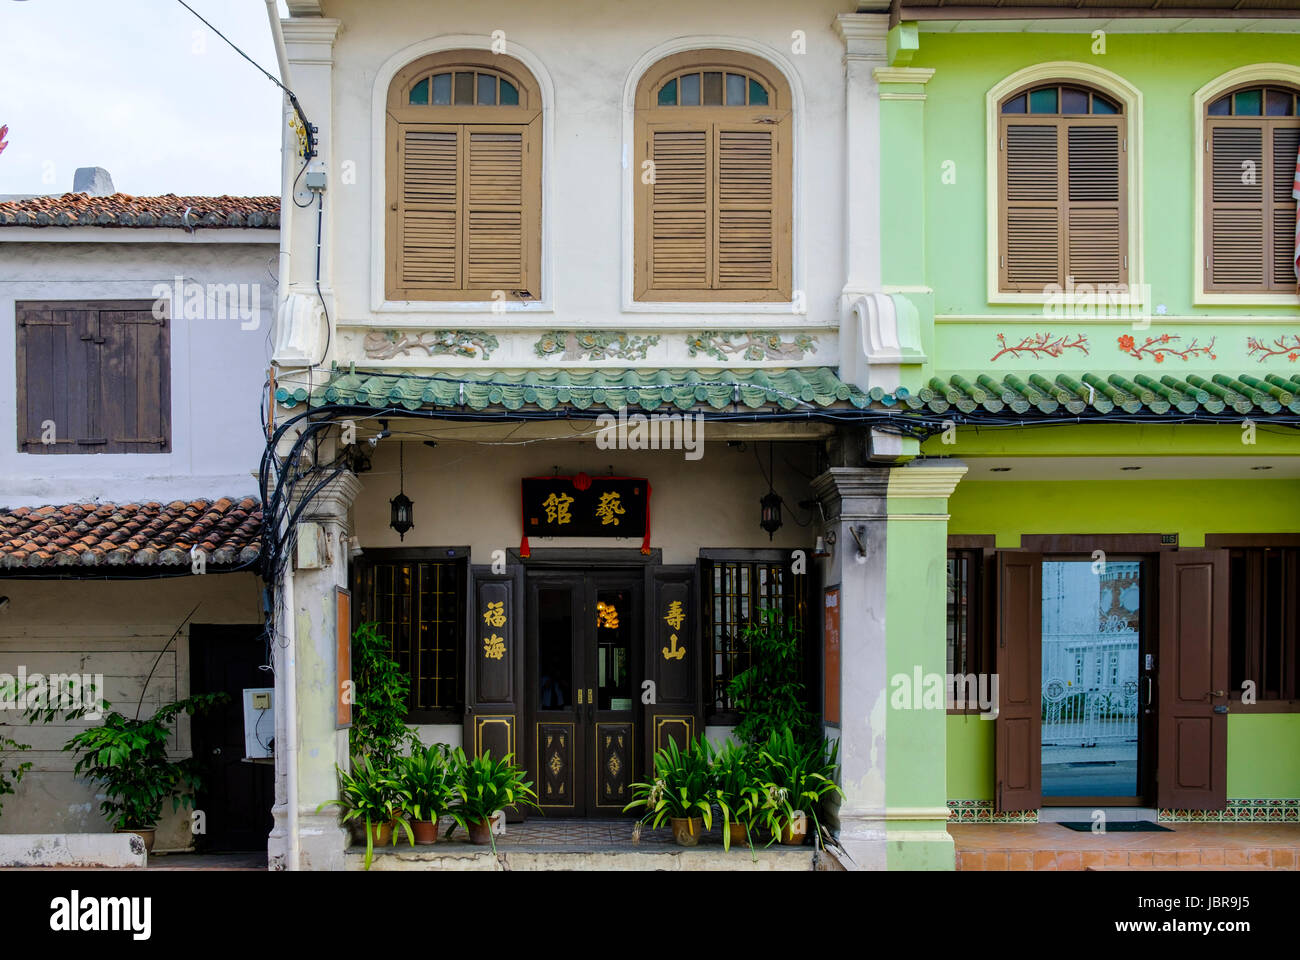 Front of a typical Peranakan-style (Baba-Nyonya, or Straits Chinese) shophouse mixing Chinese and colonial architectural - Stock Image